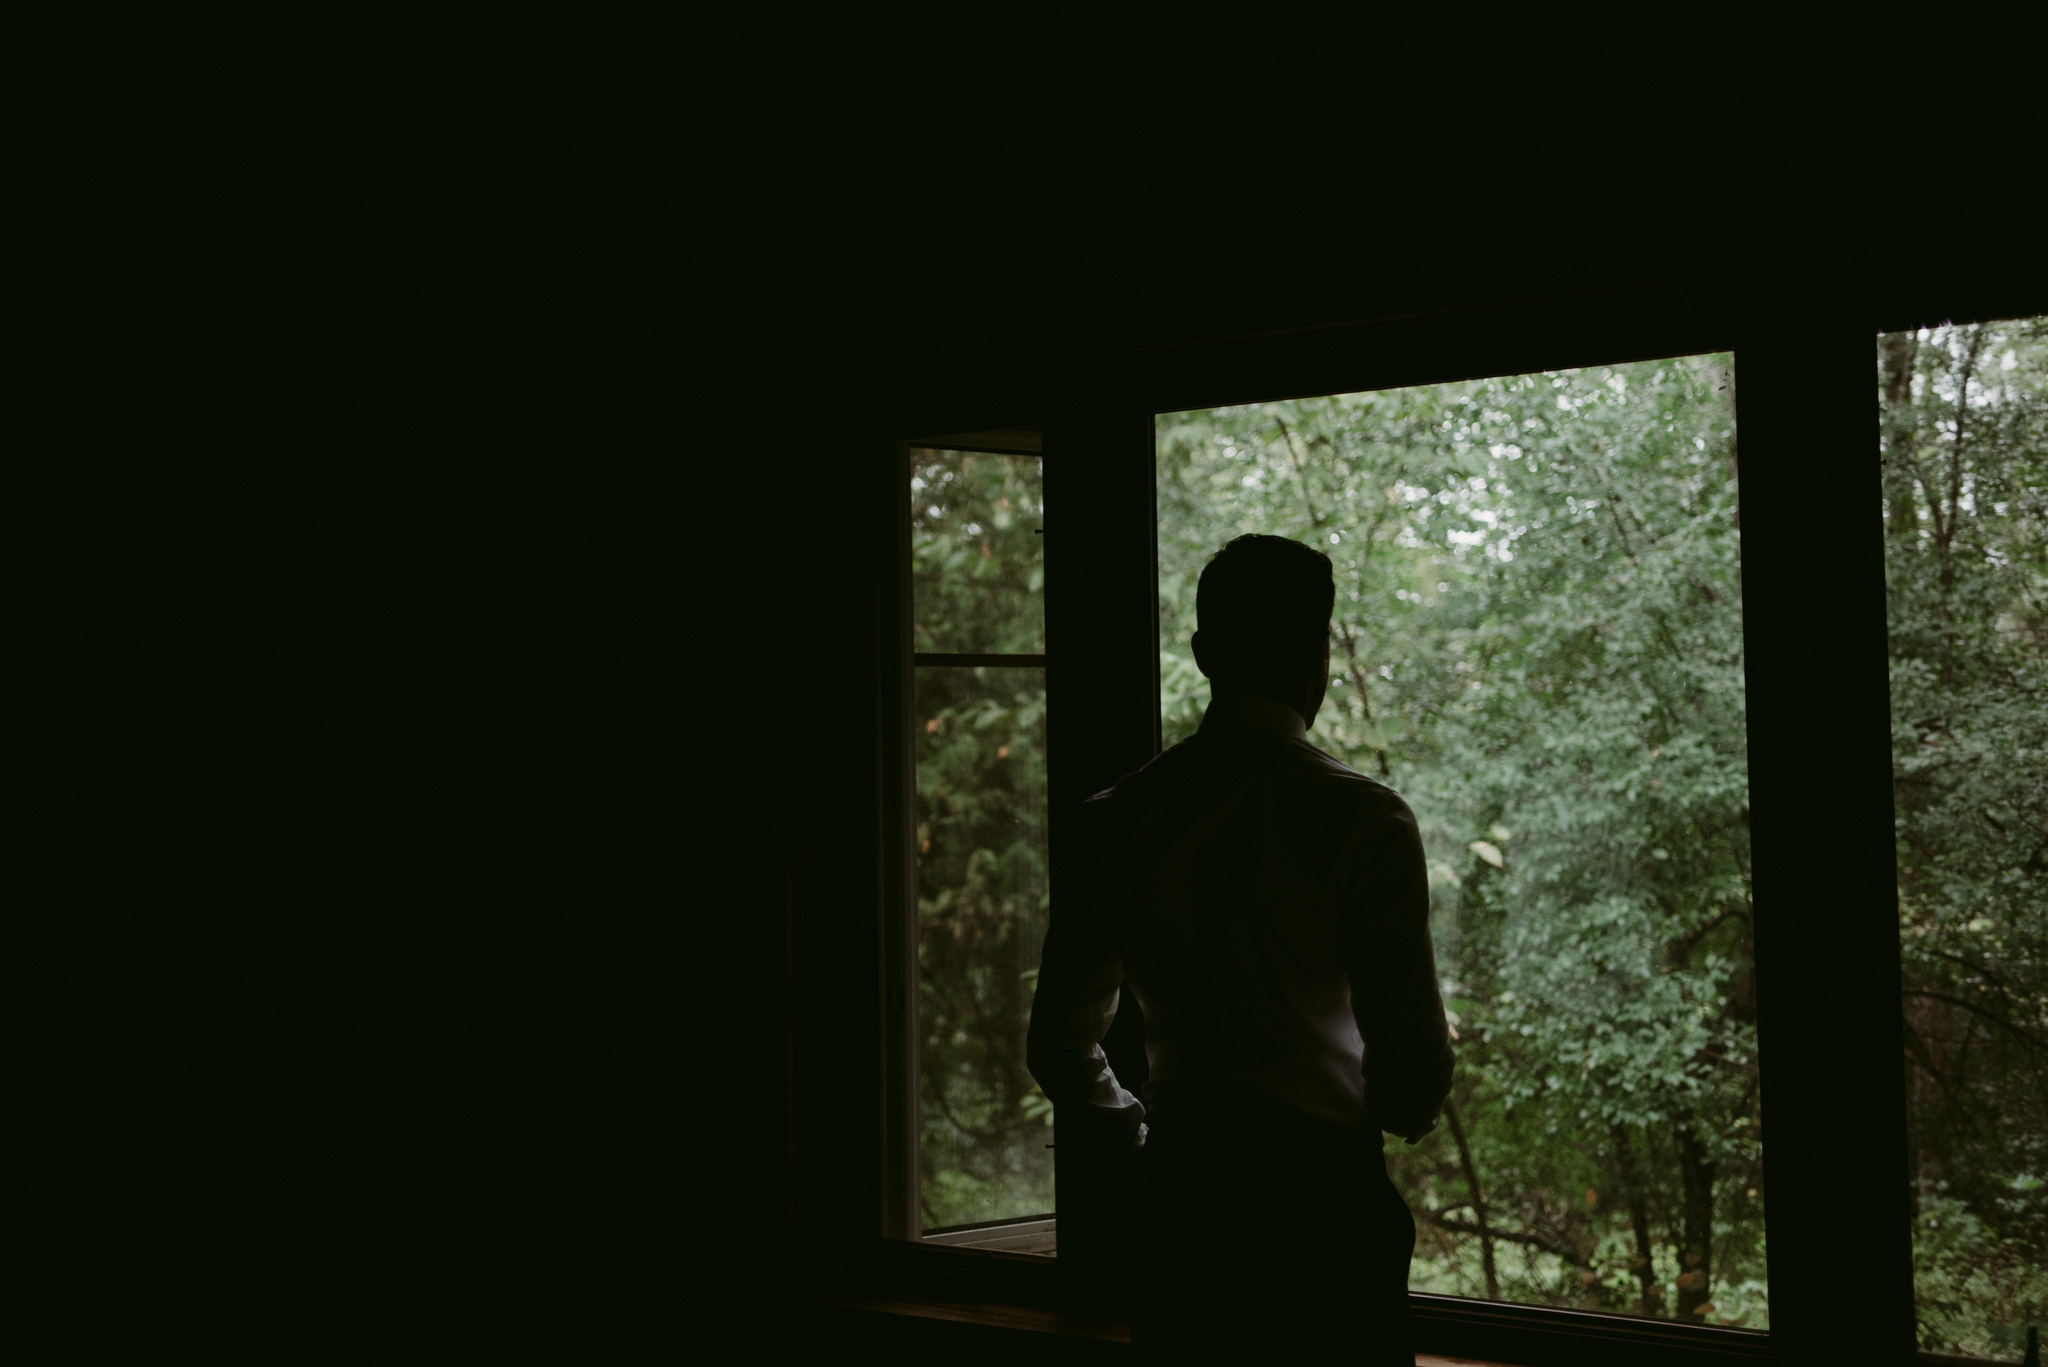 Groom standing and looking out window at forest in cottage